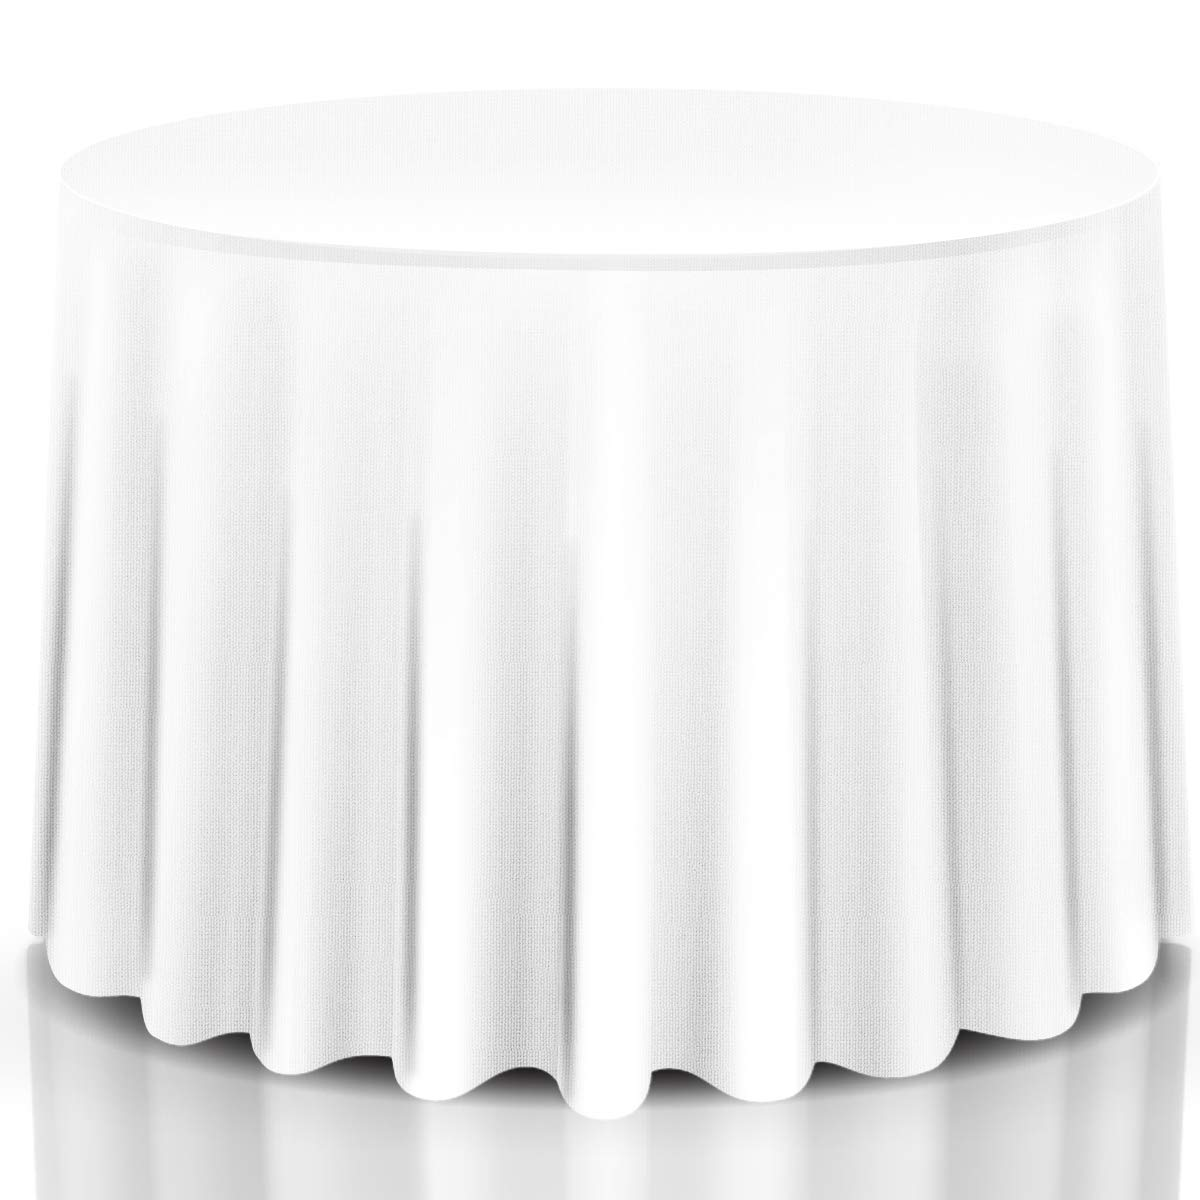 Giantex 10 Pcs Round White Tablecloth 90-Inch, Premium Polyester Table Cover, Machine Washable, Durable Table Cloths for Wedding Reception Restaurant Banquet Party